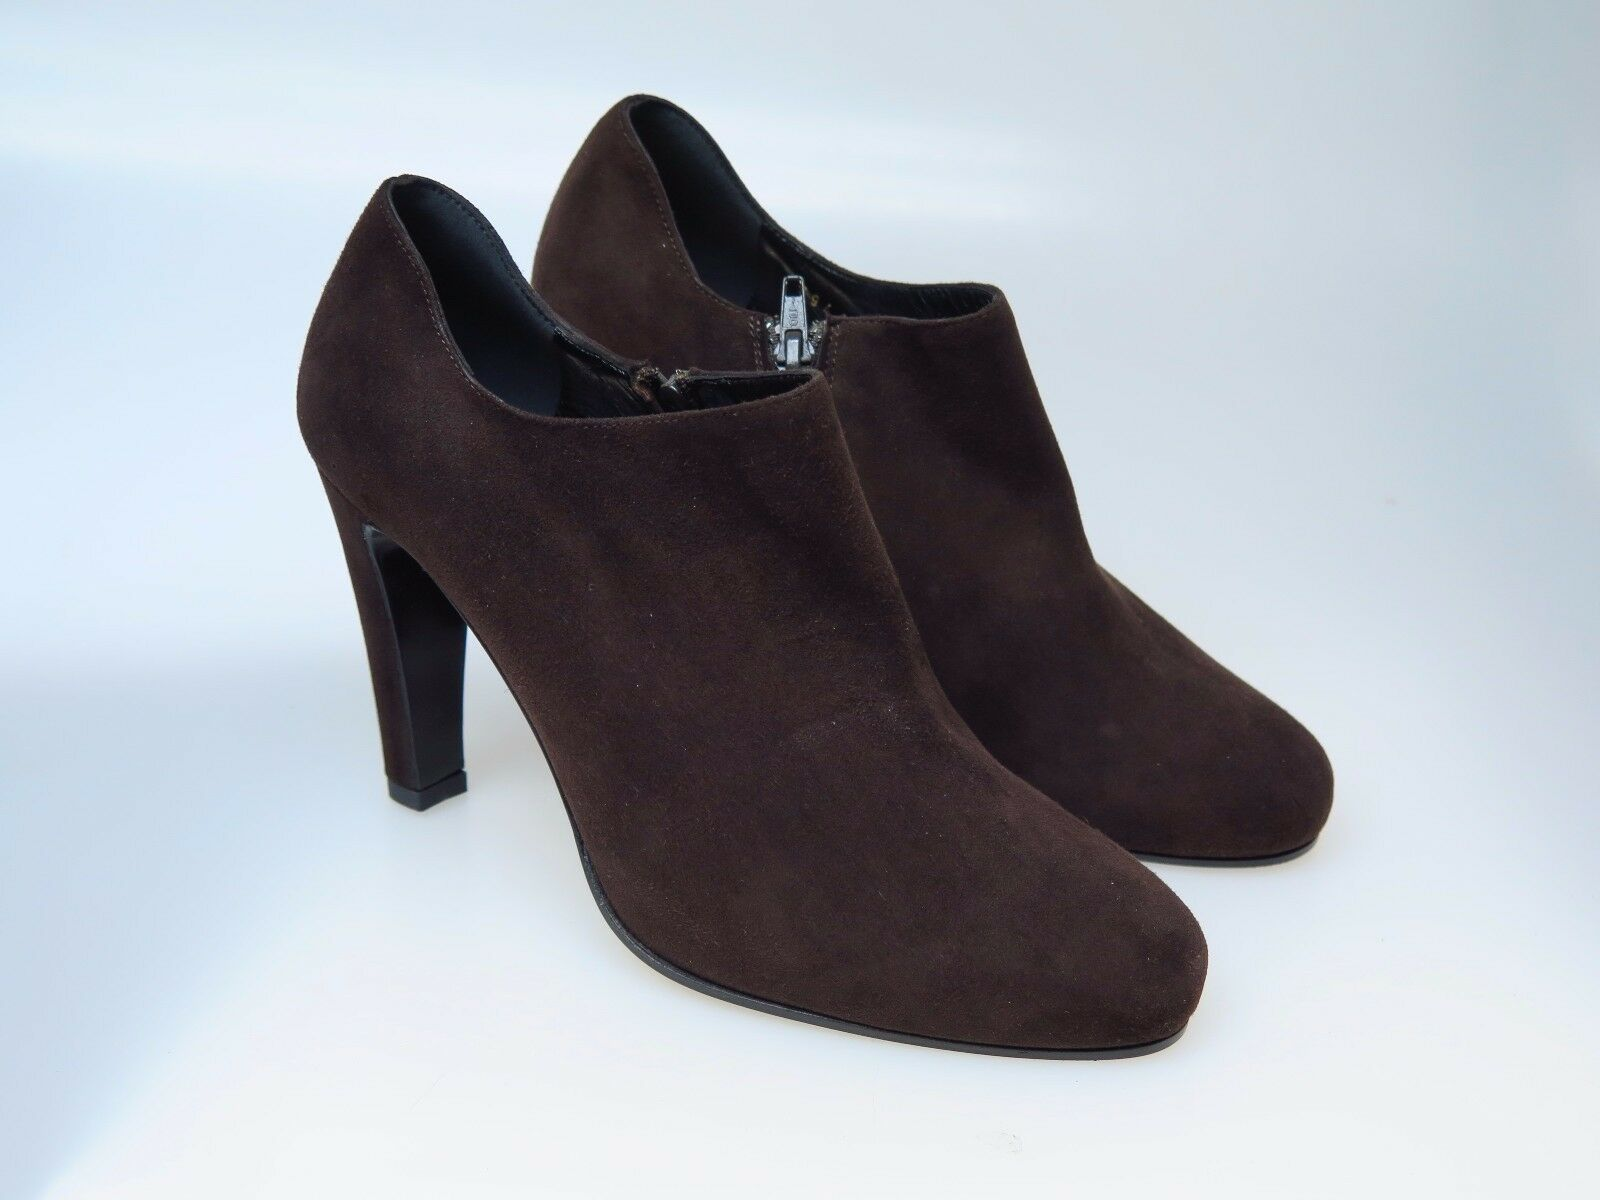 Sultana Italy Chaussures Femmes Femmes Chaussures Bottines Boots Cuir n4257 Amber marron t 37,5 NEUF 6c0a28